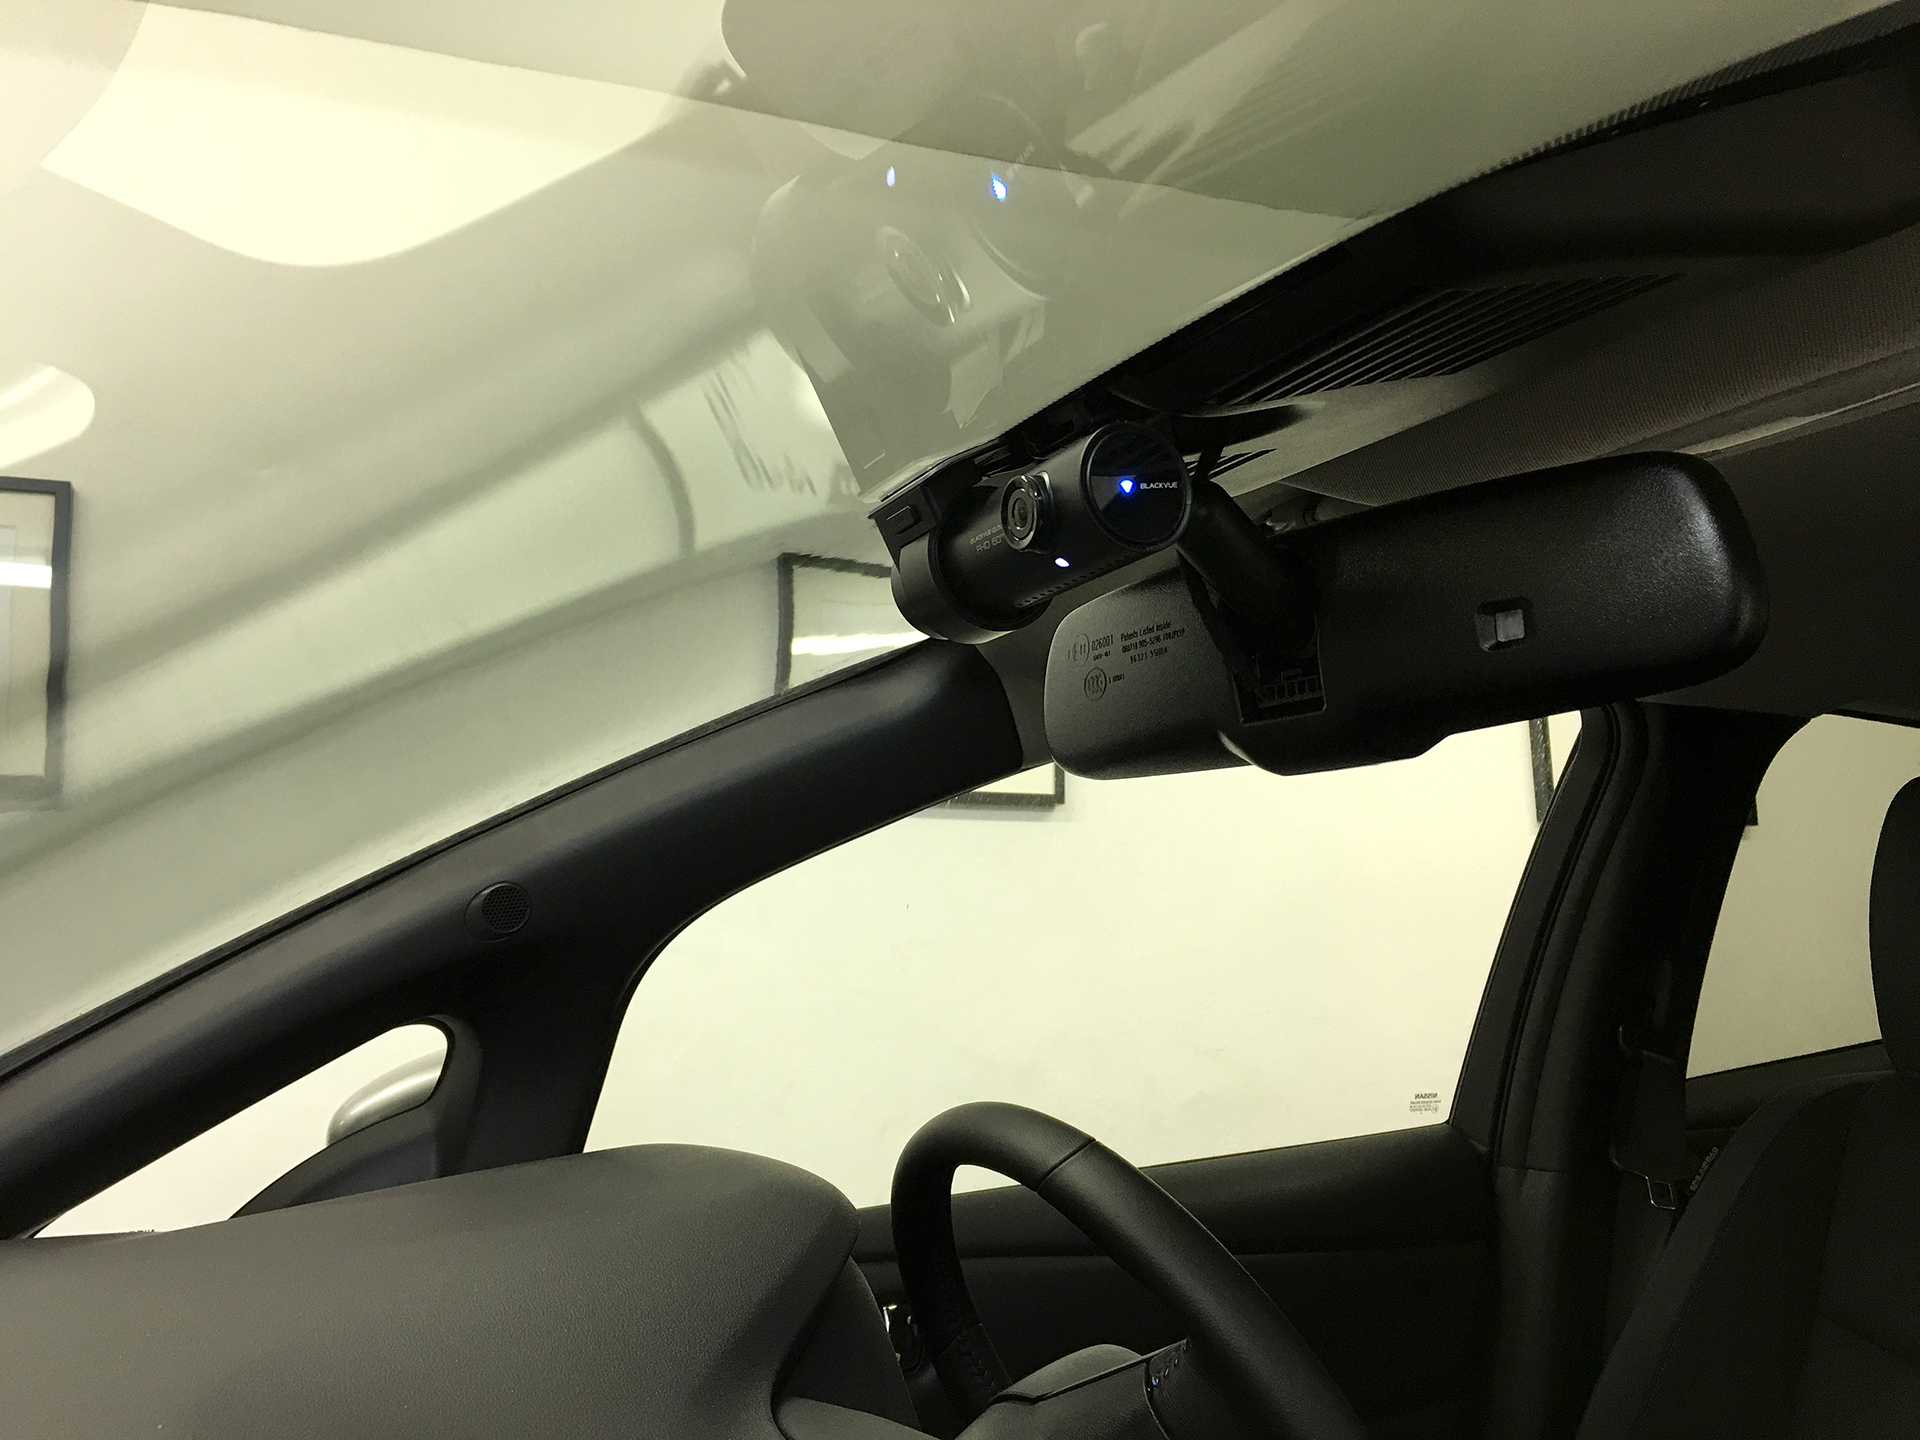 Dash camera Installations